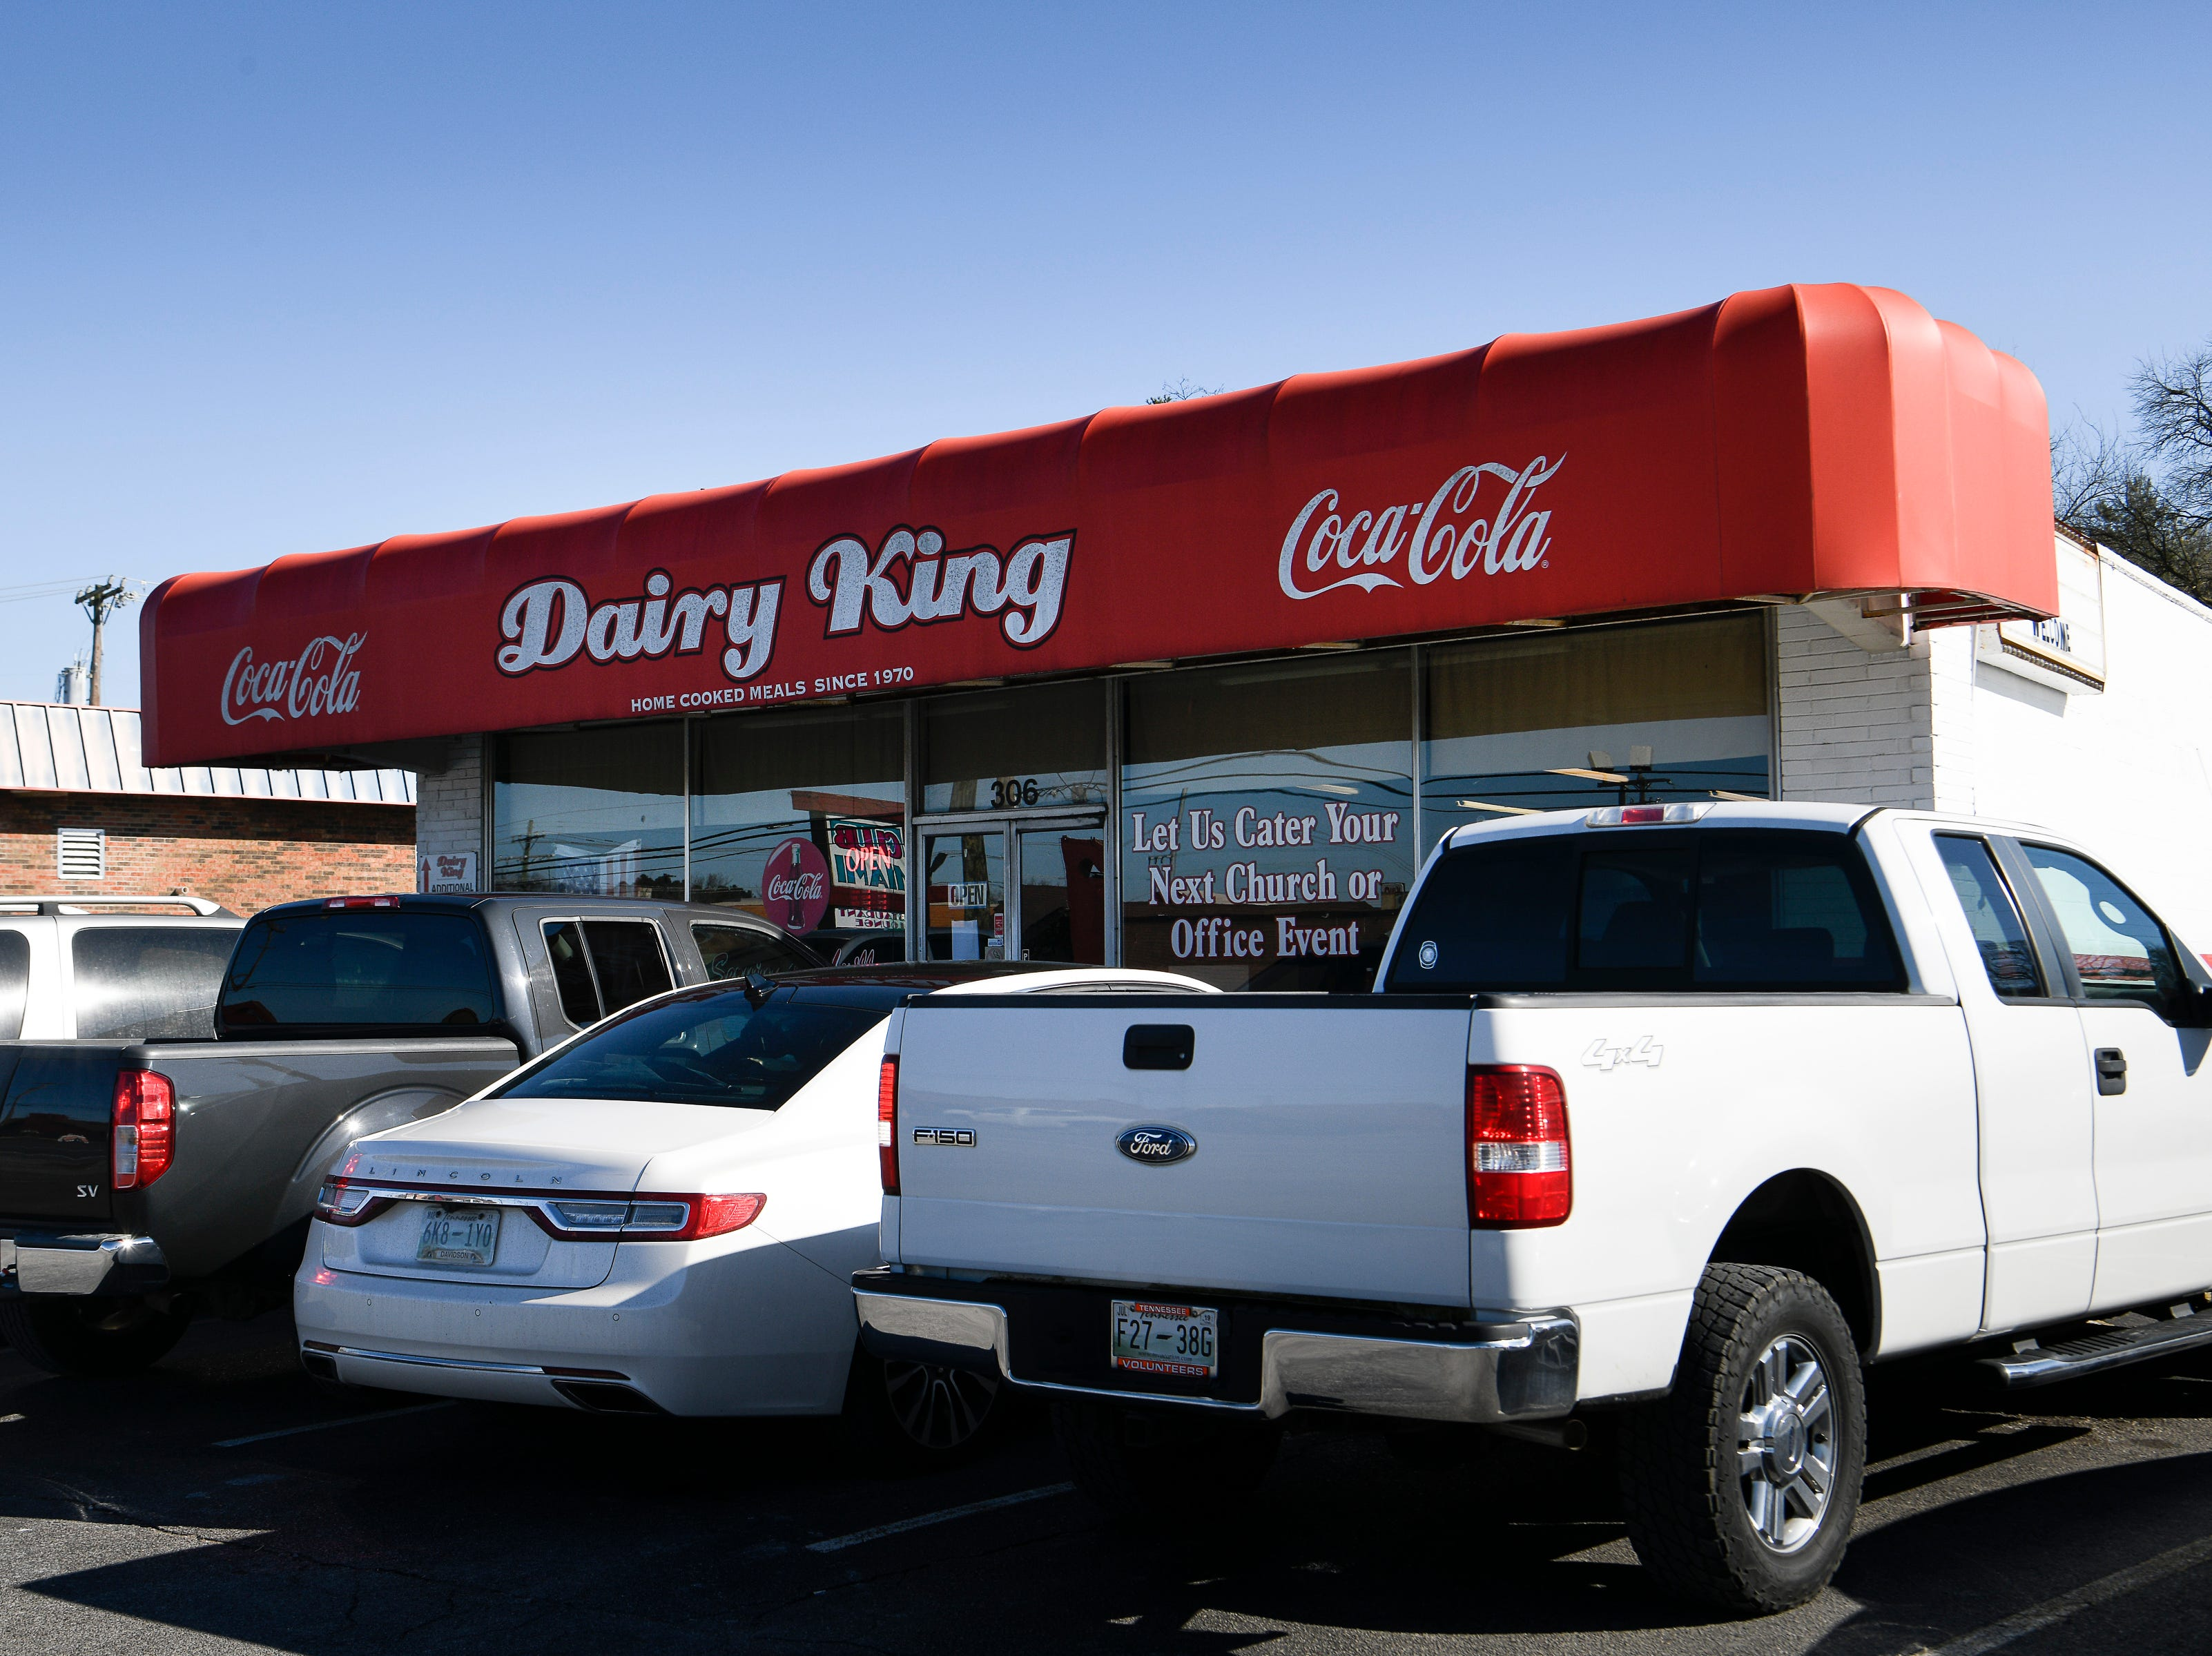 Dairy King has been owned by the Jones family since 1970 and continues to serve the community.